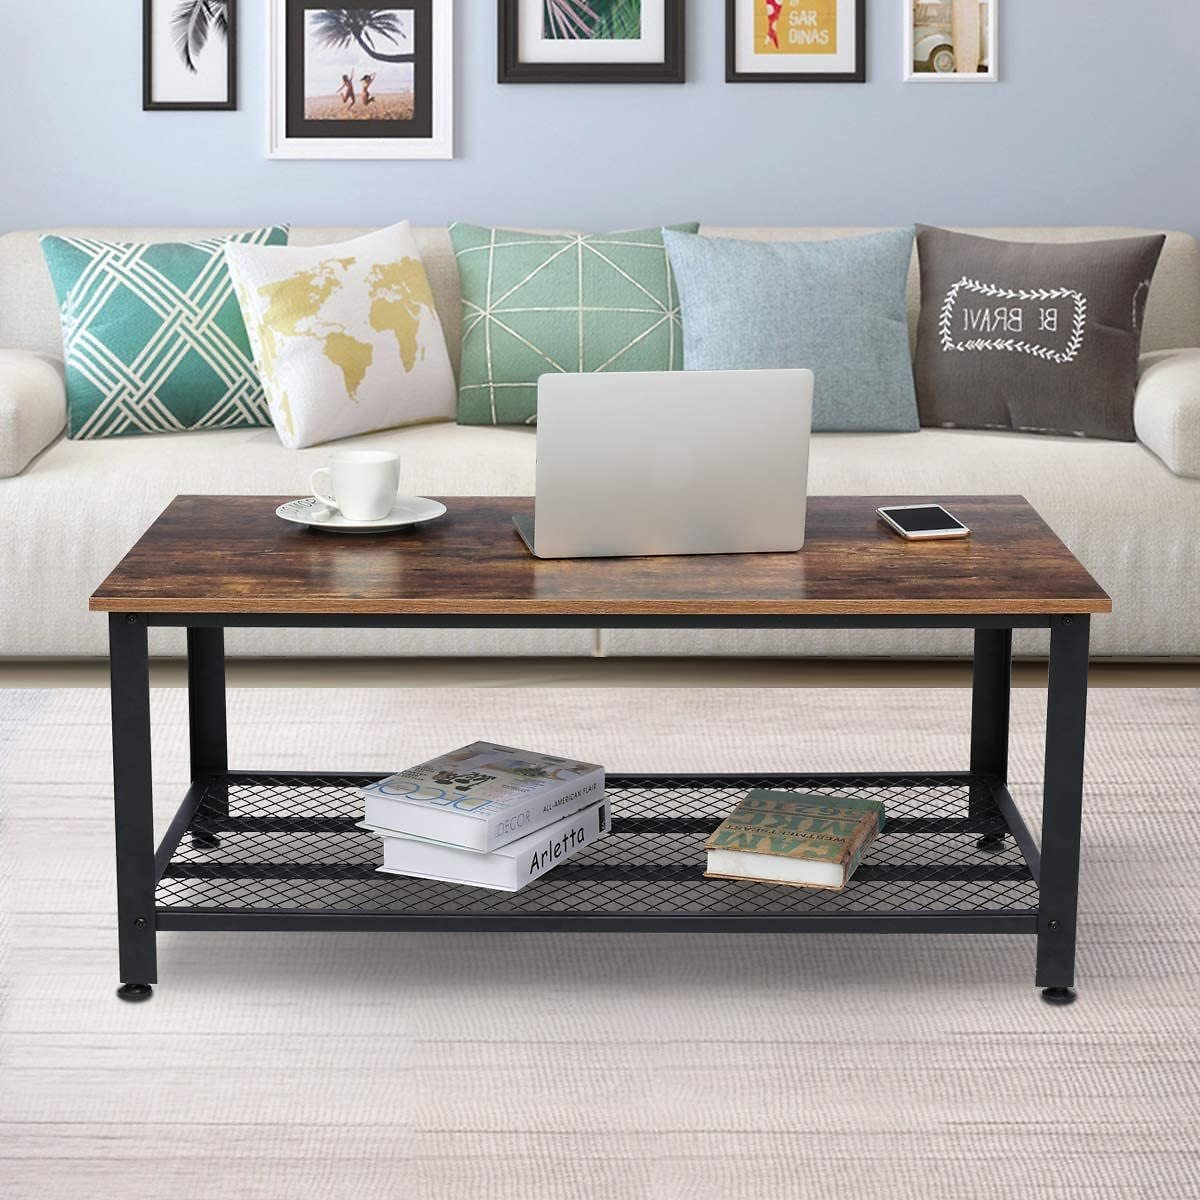 Industrial Coffee Table with Storage Drawers for Living Room Cocktail End Tables Wood Furniture with Metal Frame